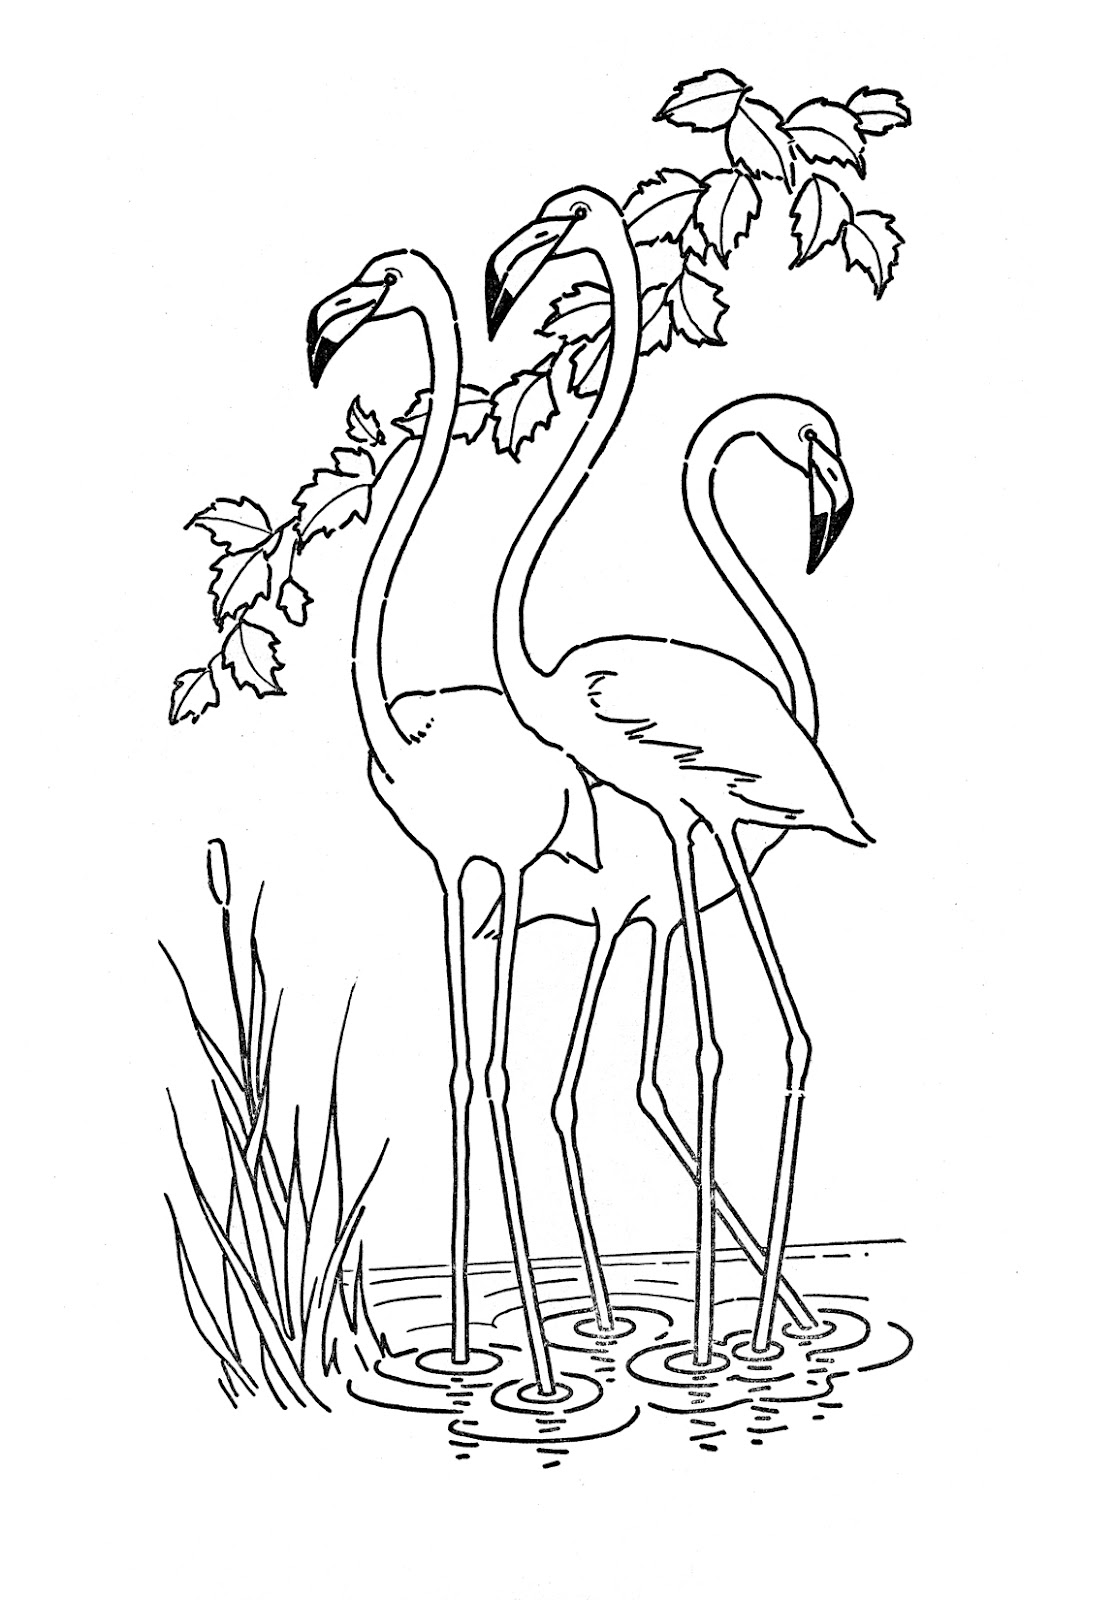 black and white colouring pages free clipart of a black and white adult coloring page black colouring white pages and